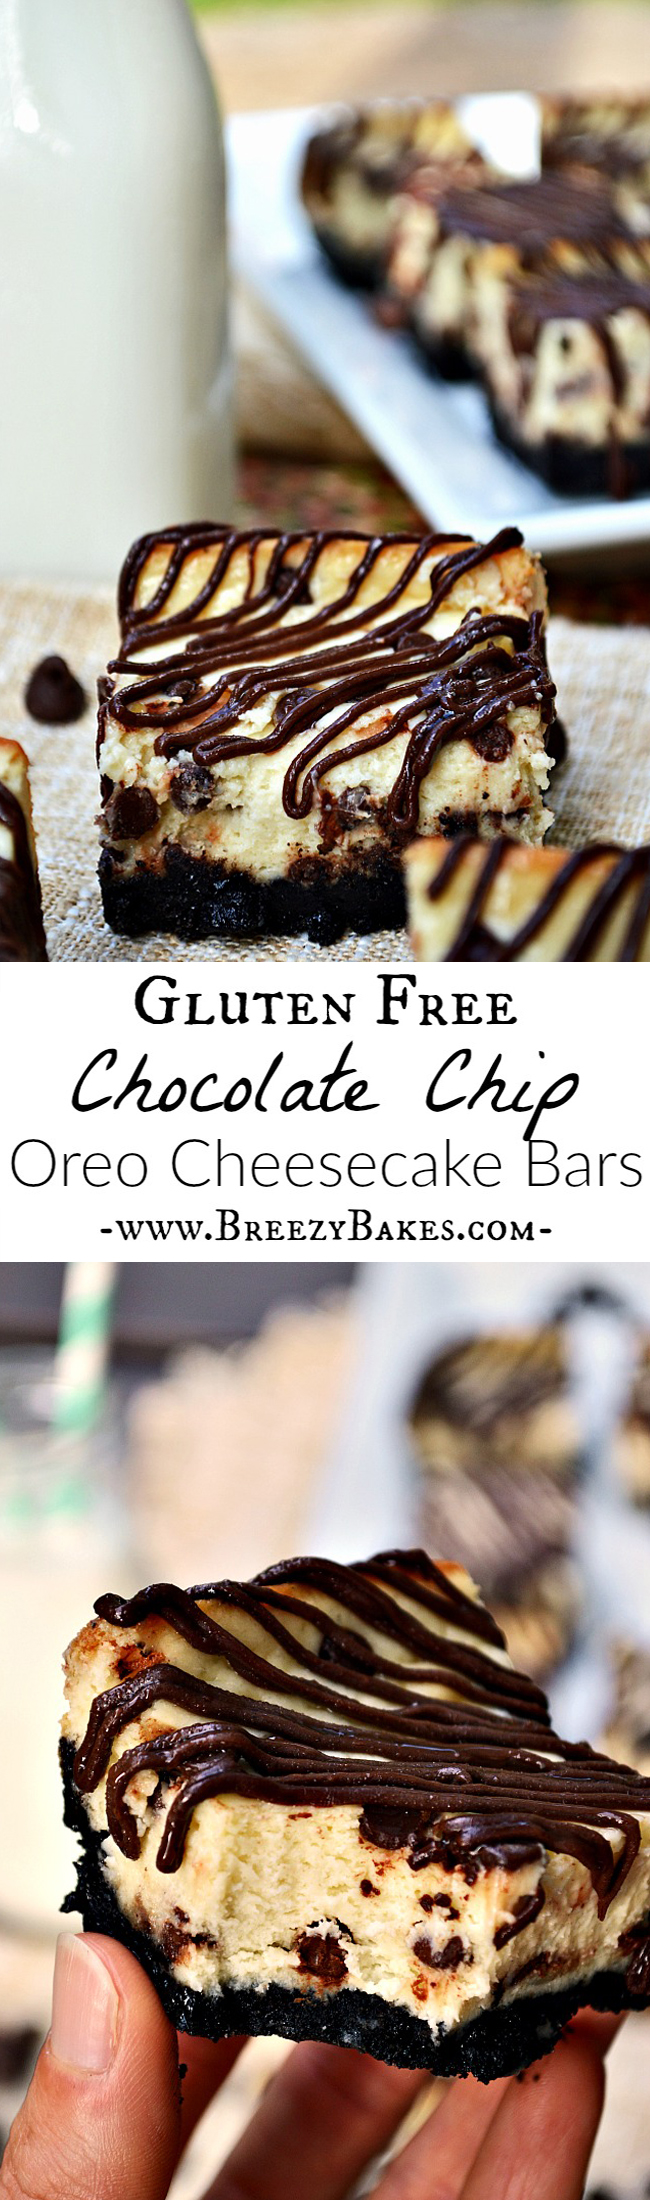 These Gluten Free Chocolate Chip Oreo Cheesecake Bars take minimal effort to bake, but pack maximum amounts of flavor! Go for an easy, yet tasty dessert with these creamy cheesecake bars.